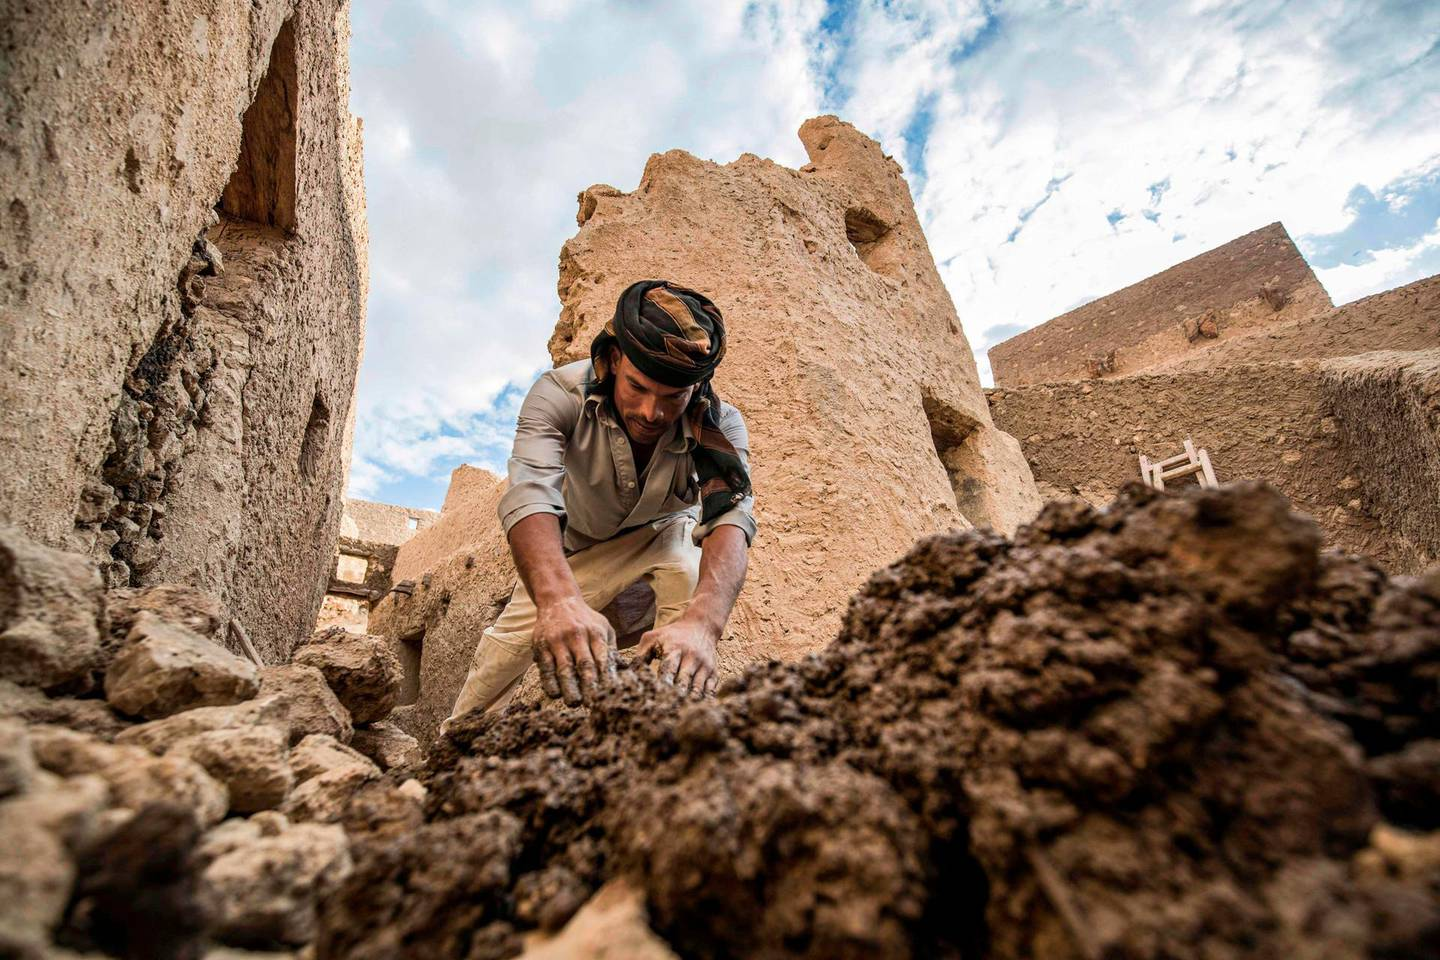 """An Egyptian labouror works on the restoration of the fortress of Shali, in the Egyptian desert oasis of Siwa, some 600 kms southwest of the capital Cairo, on November 5, 2020.  The 13th century edifice, called Shali or """"Home"""" in the Siwi language, was built by Berber populations, using kershef, a mixture of clay, salt and rock which acts as a natural insulator in an area where the summer heat can be scorching. After it was worn away by erosion, and then torrential rains in 1926, the European Union and Egyptian company Environmental Quality International (EQI) from 2018 sought to restore the building, at a cost of over $600,000.  / AFP / Khaled DESOUKI"""